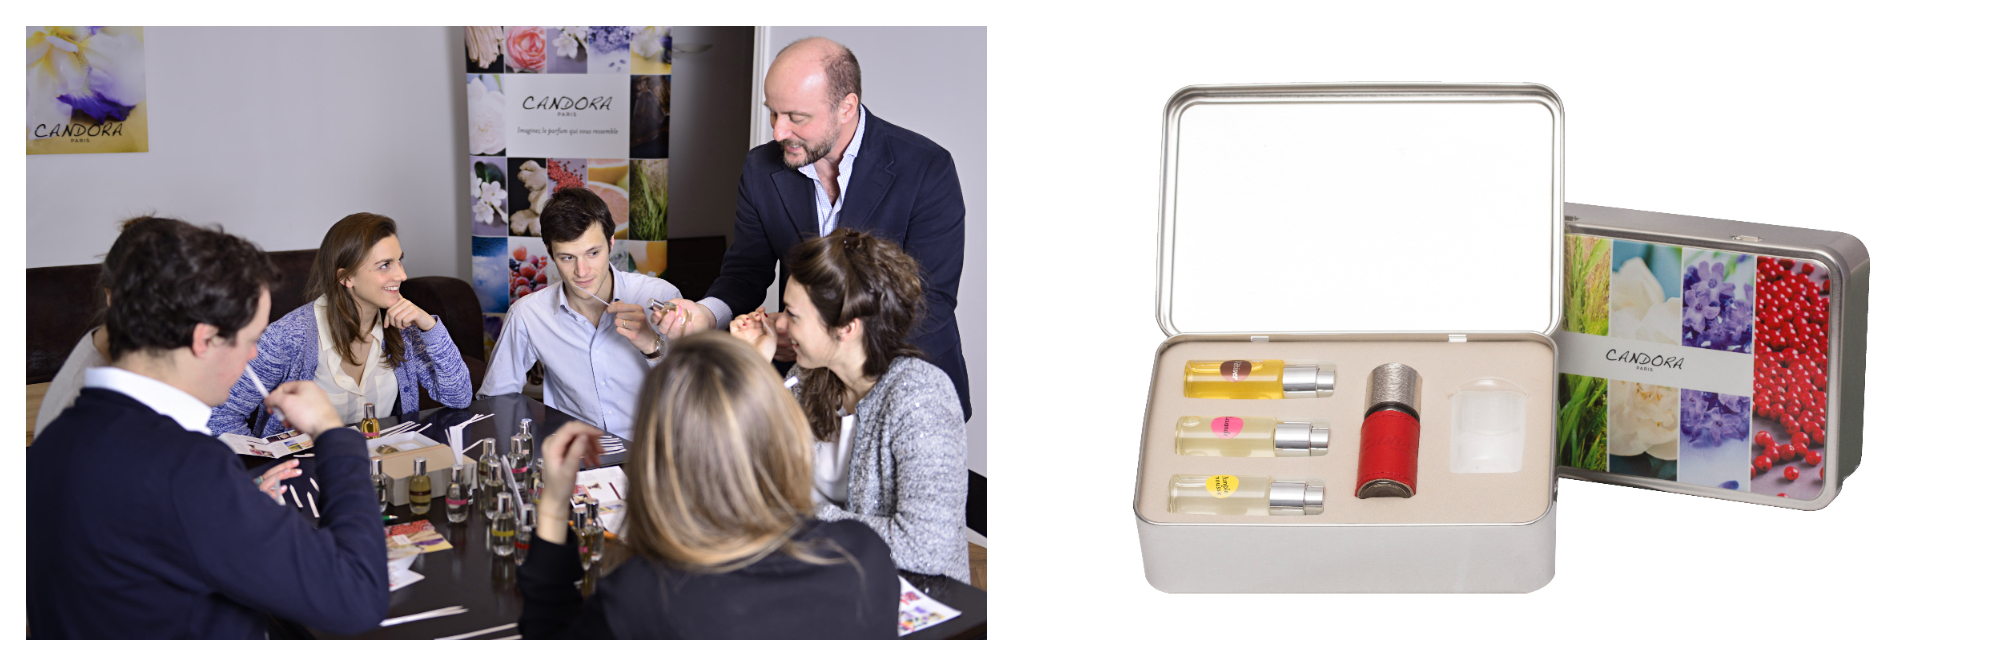 On left: A group of people participate in a workshop led by Candora, a niche perfumery in Paris' Marais neighborhood. They are given an overview of the perfume-making process before creating their own scent. On right: A tin of Candora perfumes features four different scents for recipients to try and to mix.